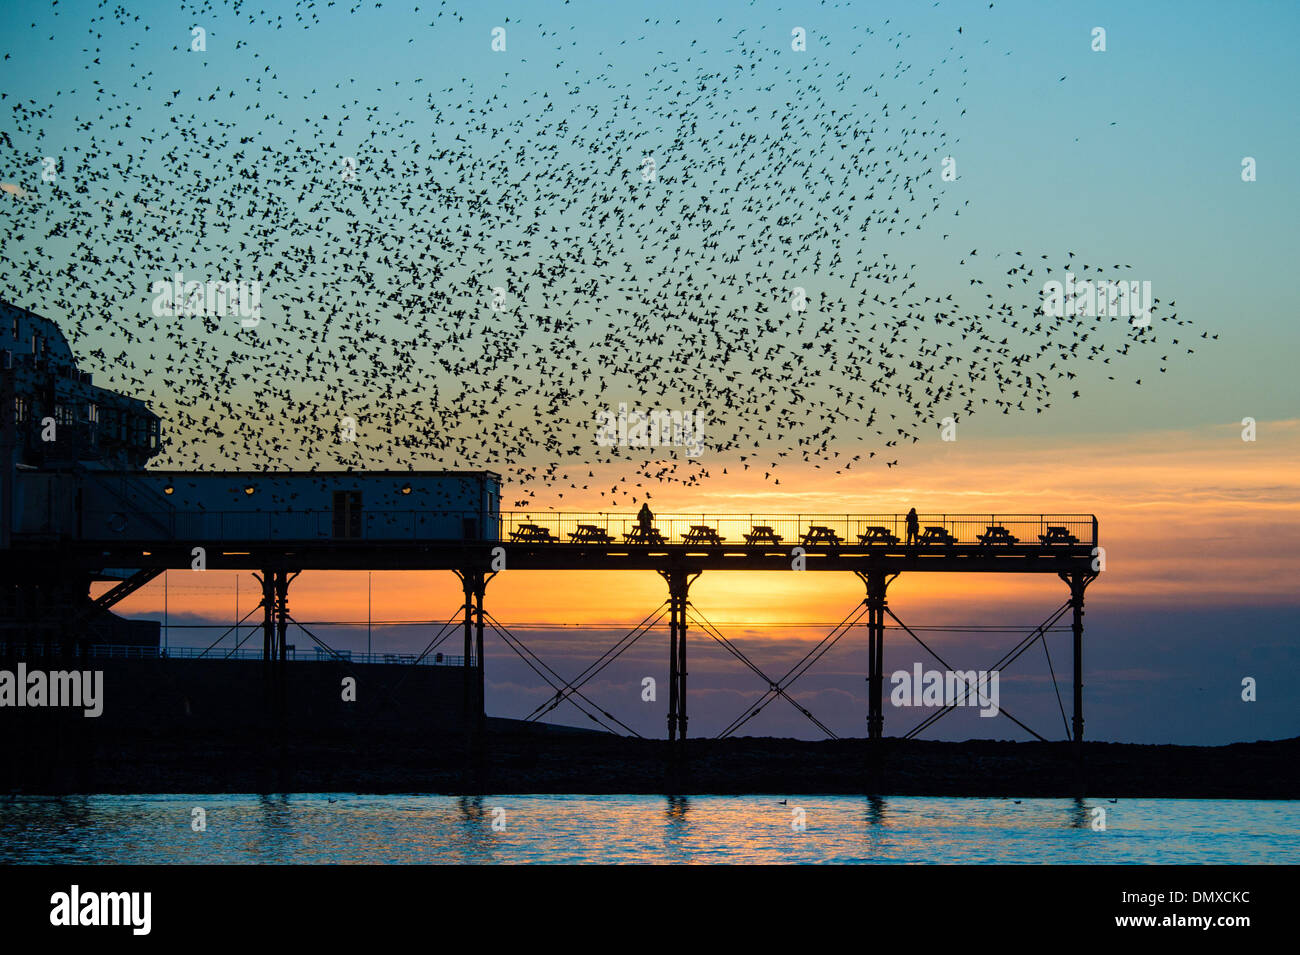 Aberystwyth, Wales, UK. 17th Dec 2013.   At the end of a day of fine sunshine, tens of thousands of starlings congregate in the air above the Victorian seaside pier in Aberystwyth Wales UK. The nightly murmuration of the birds at dusk draws people from all over the country. The weather in the UK is set to turn wetter and windier in the coming days, with gales blowing in from the west  photo Credit:  keith morris/Alamy Live News - Stock Image